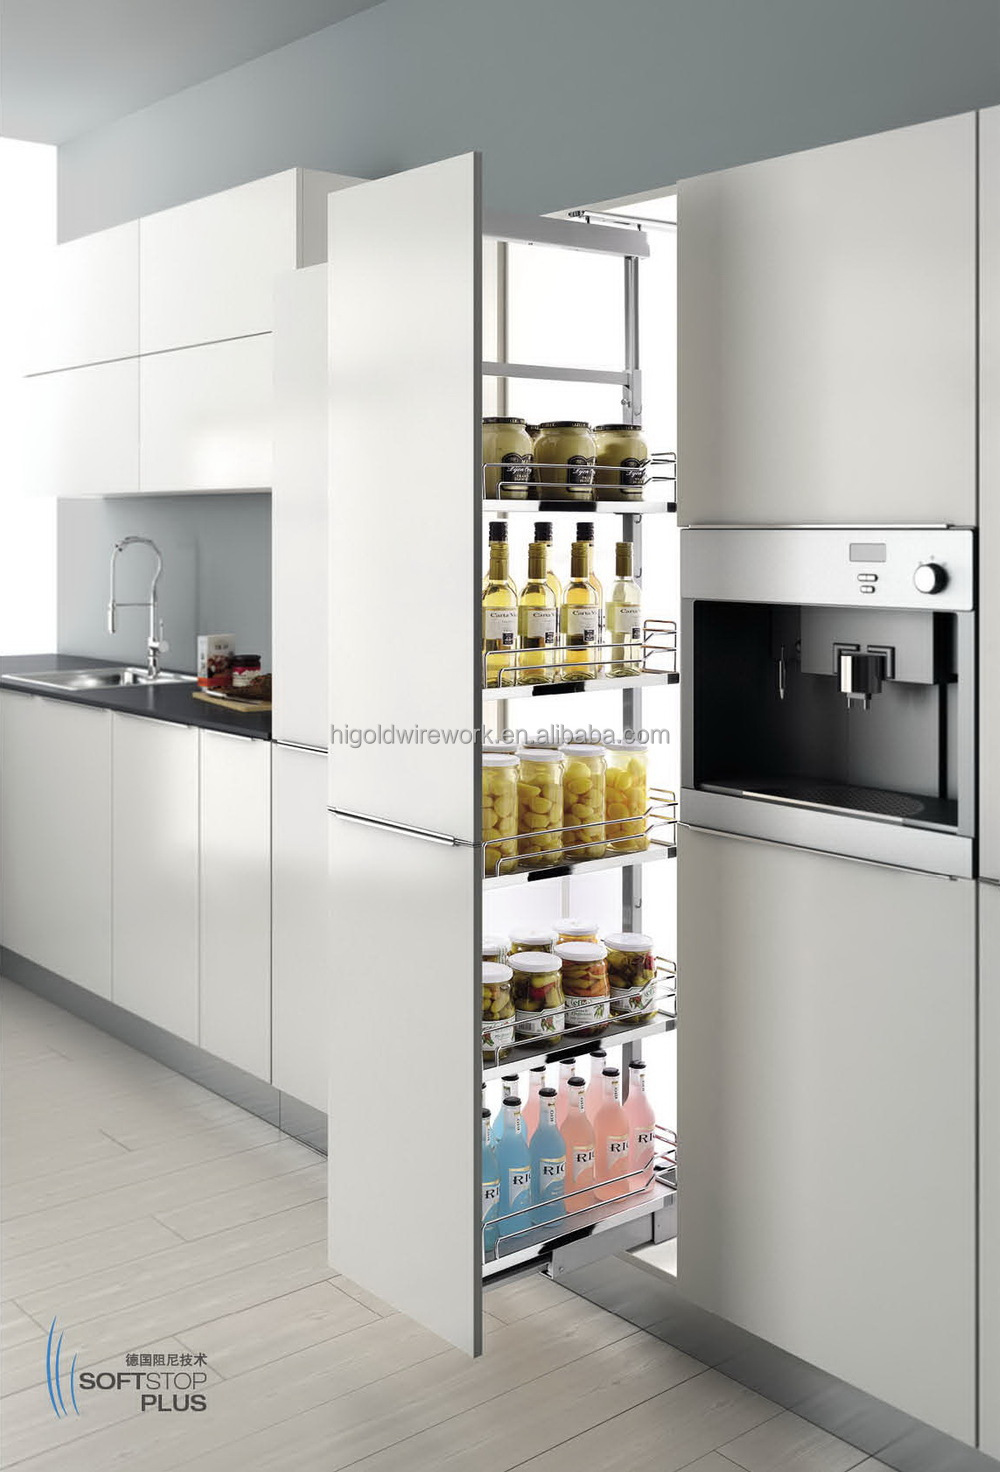 High Quality Kitchen Larder Cabinet Soft Closing Tall Unit Pull Out Basket